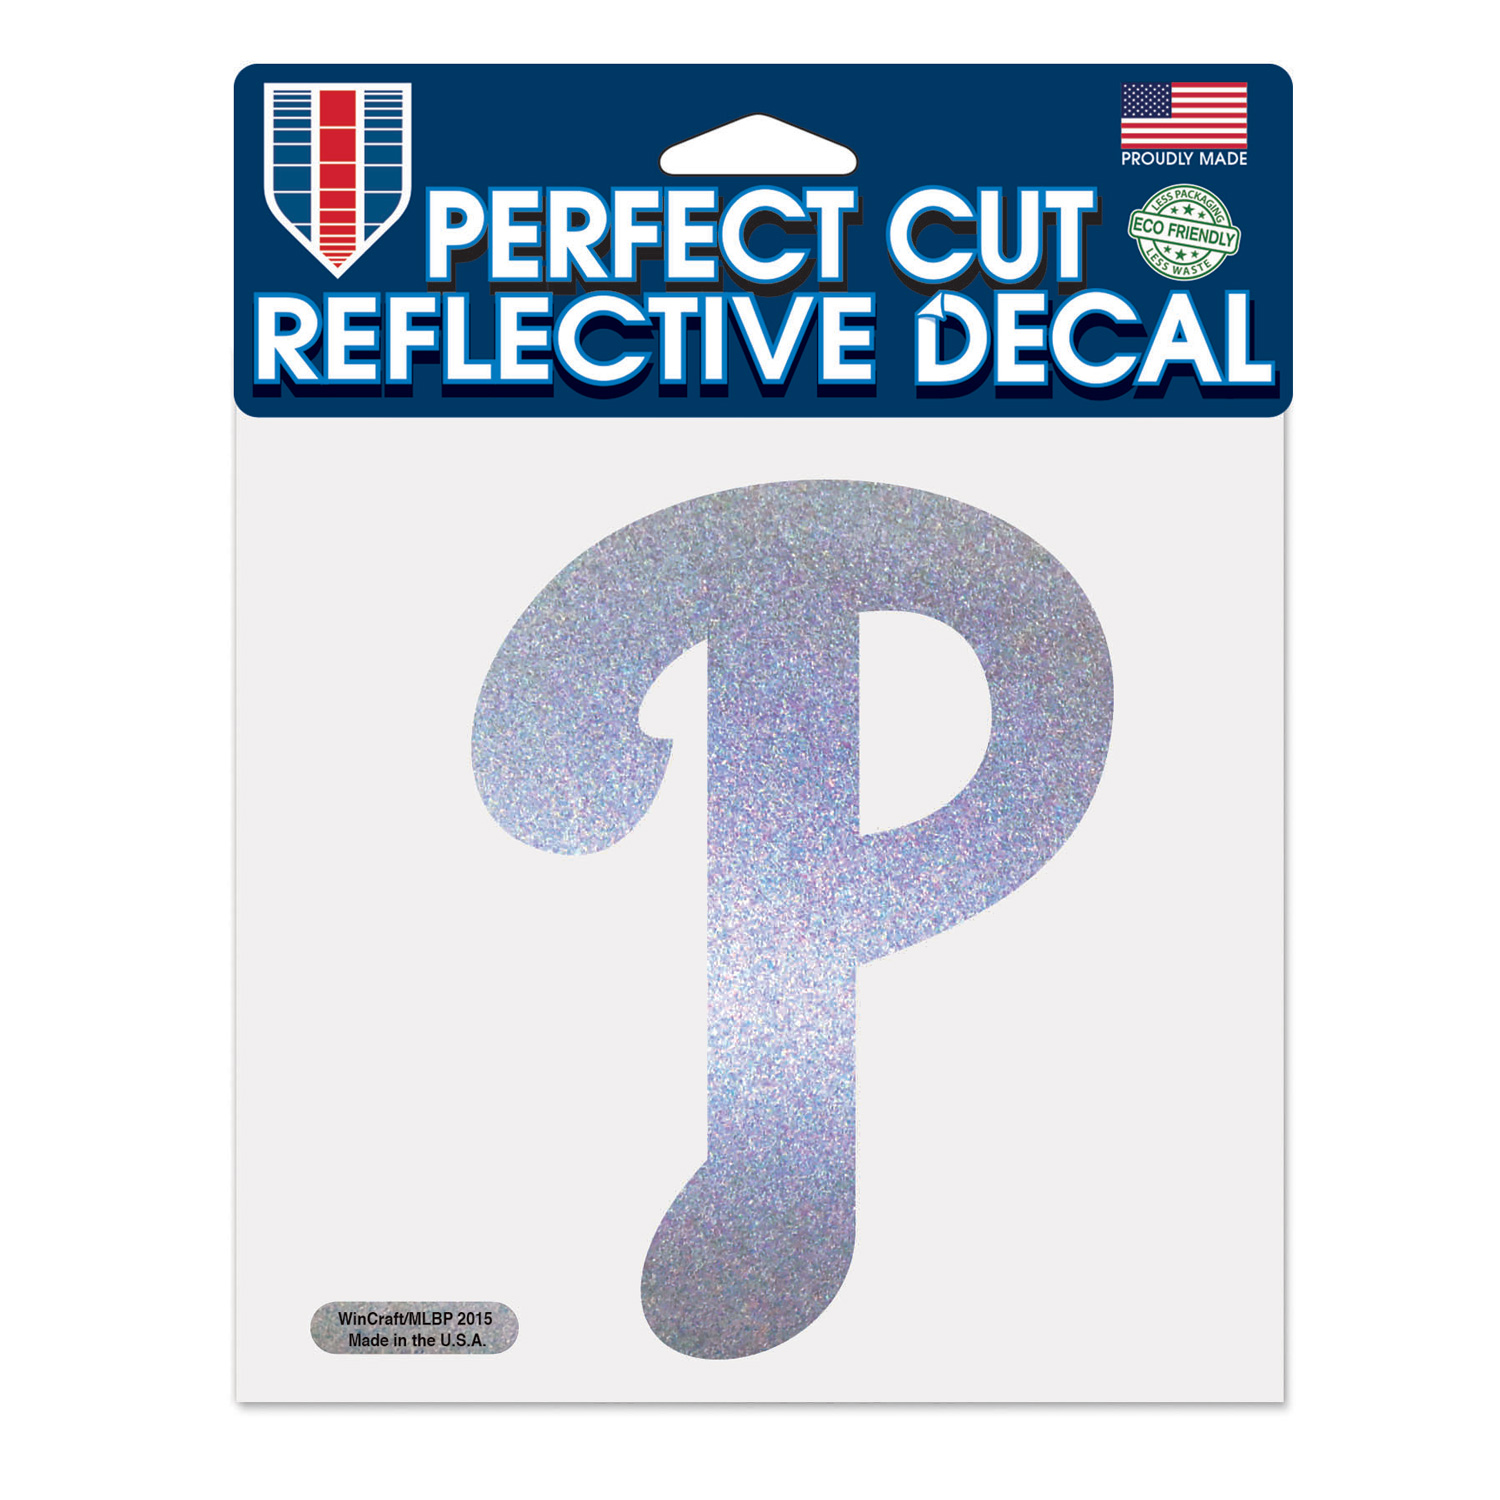 """Philadelphia Phillies WinCraft 6"""" x 6"""" Reflective Perfect Cut Decal - No Size"""